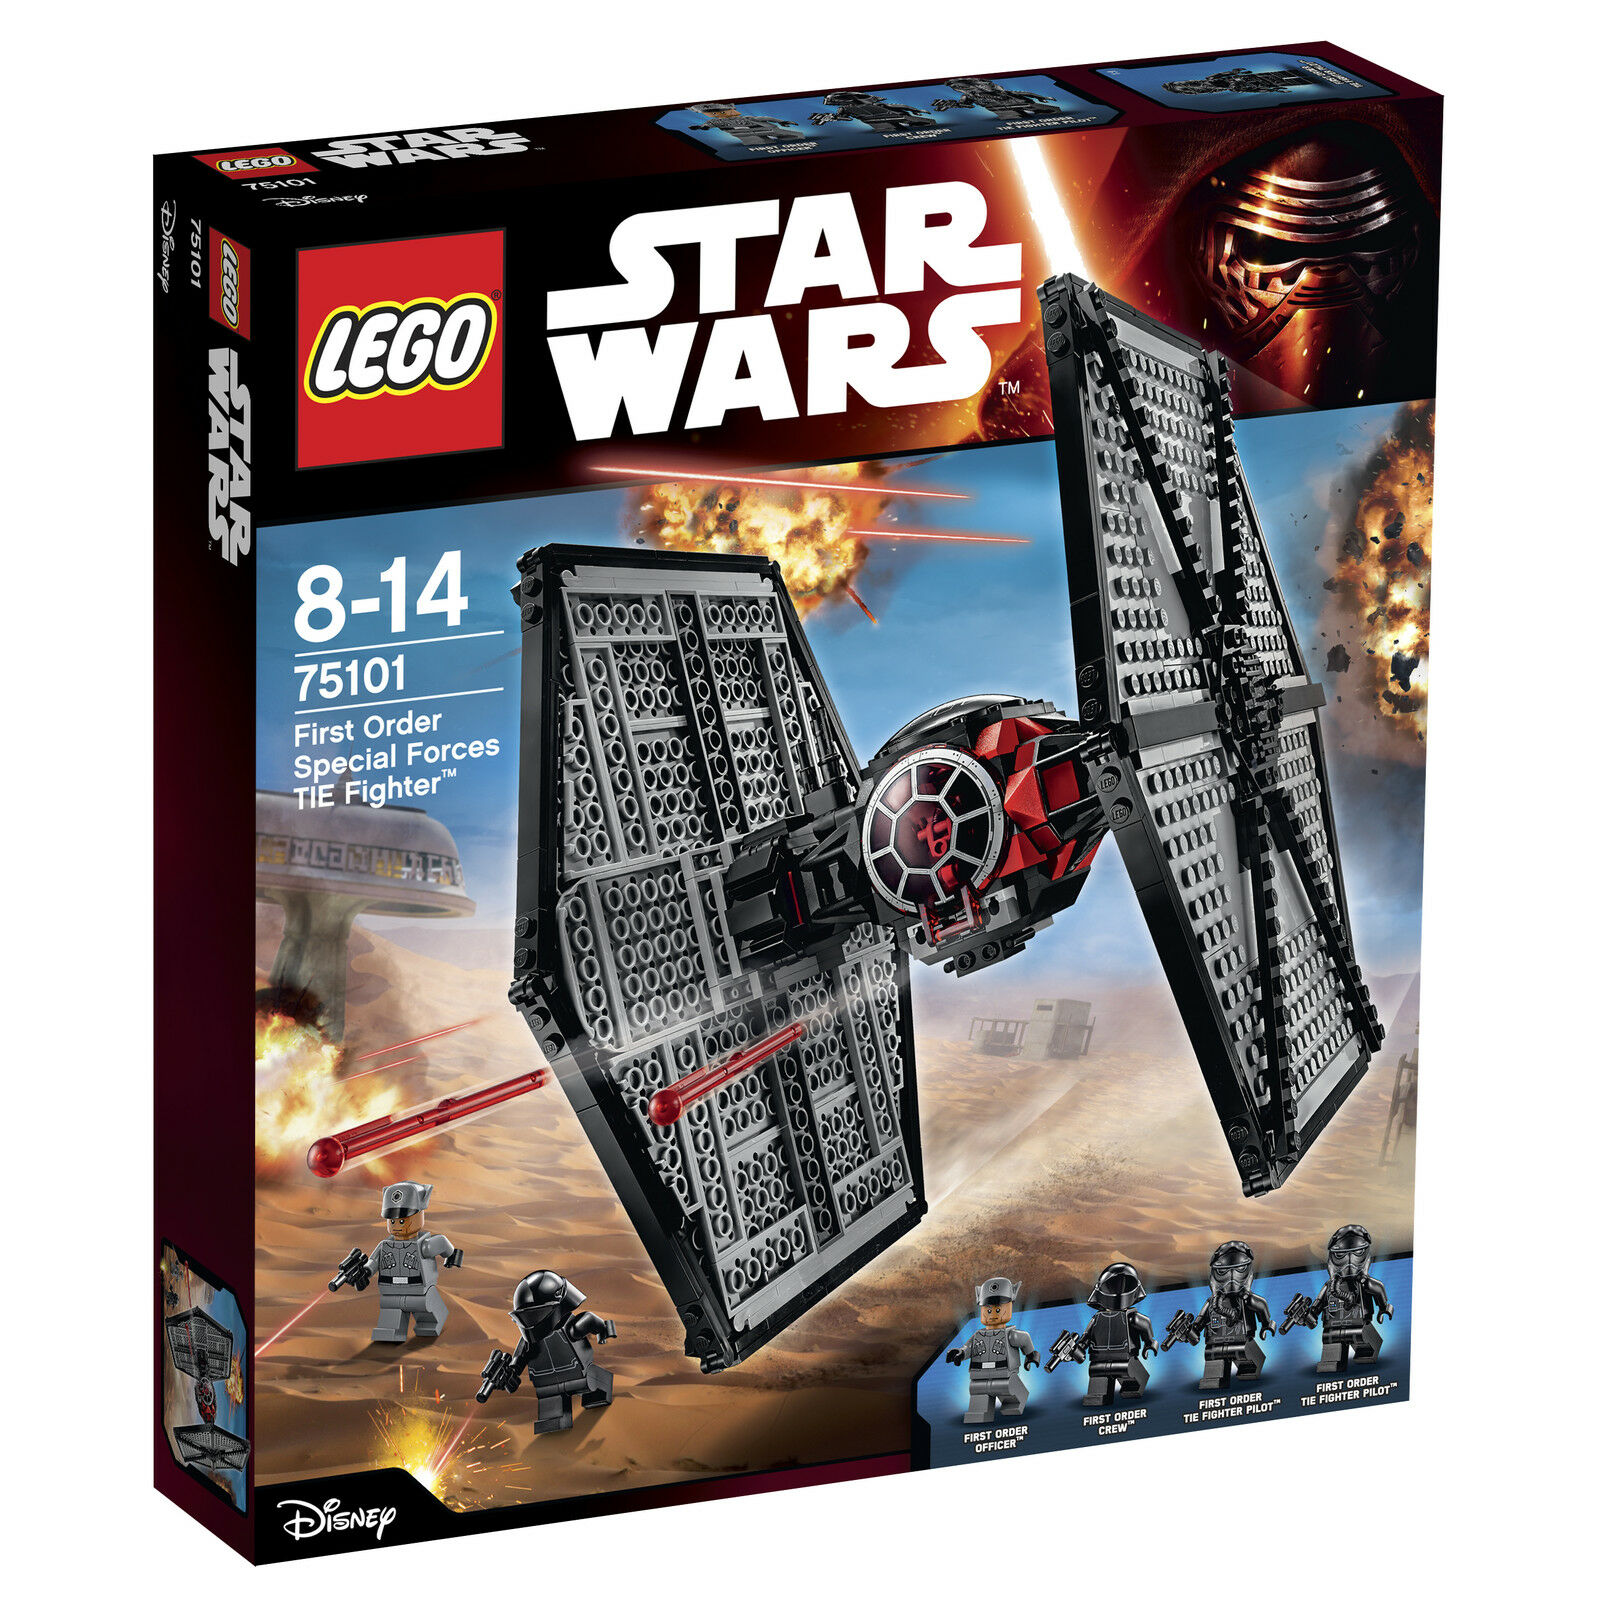 LEGO STAR WARS: The Force Awakens - Special Forces TIE Fighter [75101]